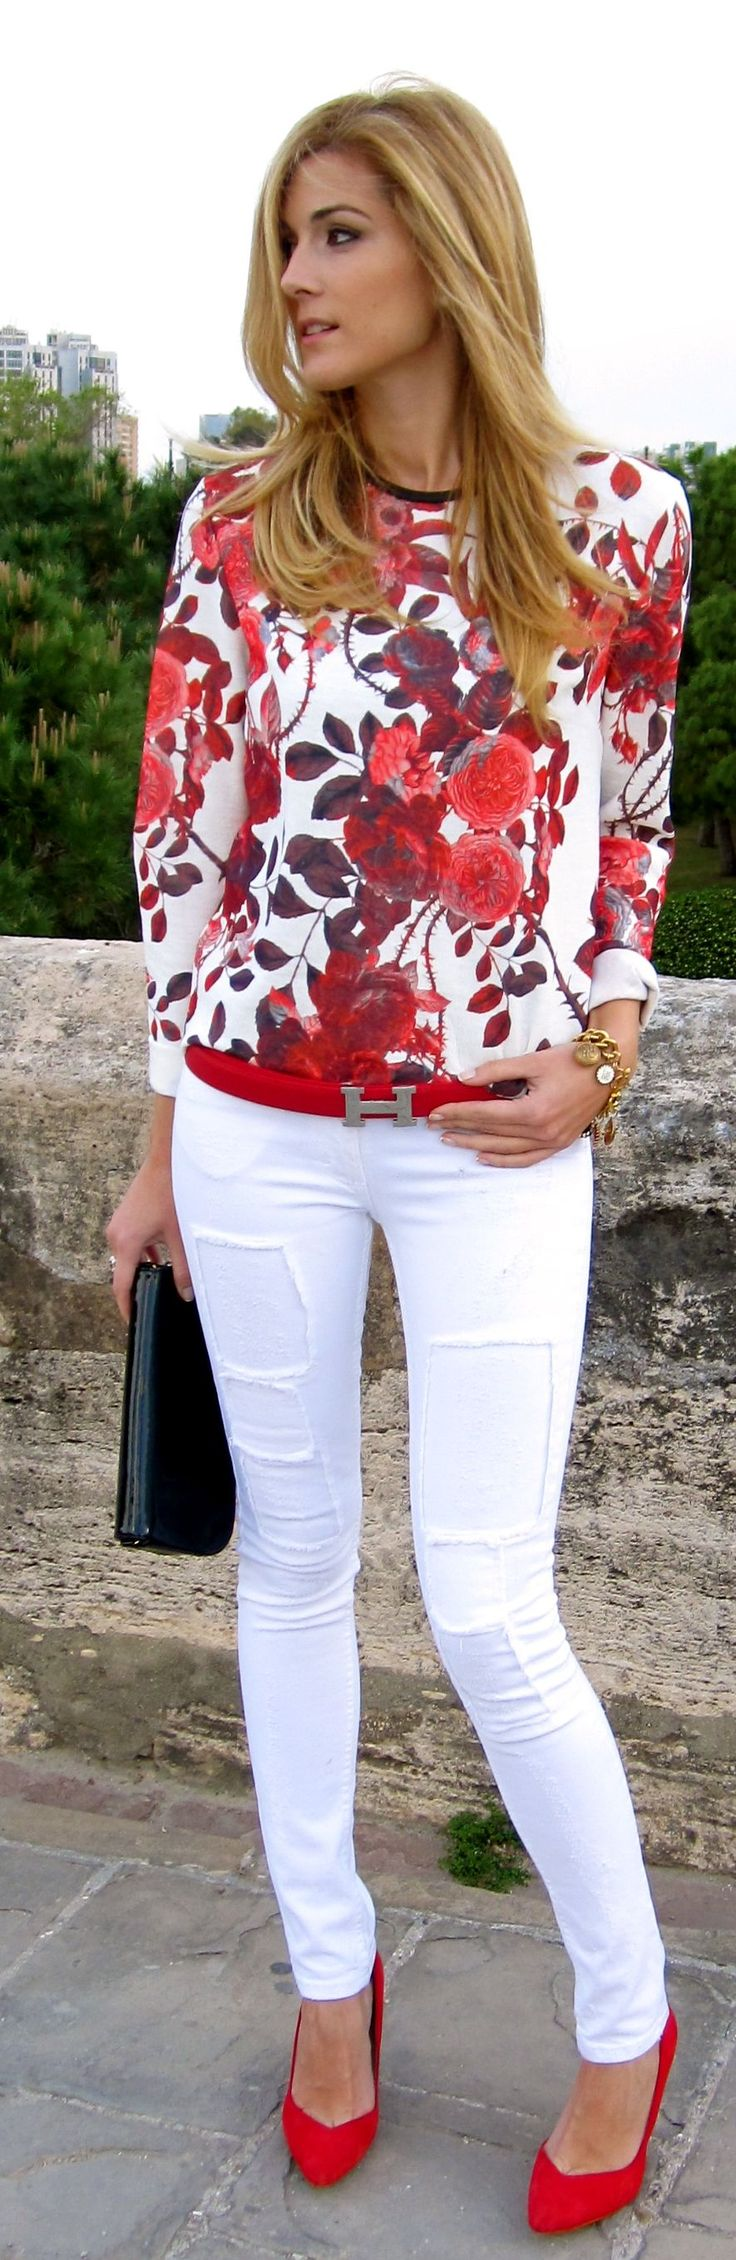 Probably would want more plain white jeans but this is beautiful.